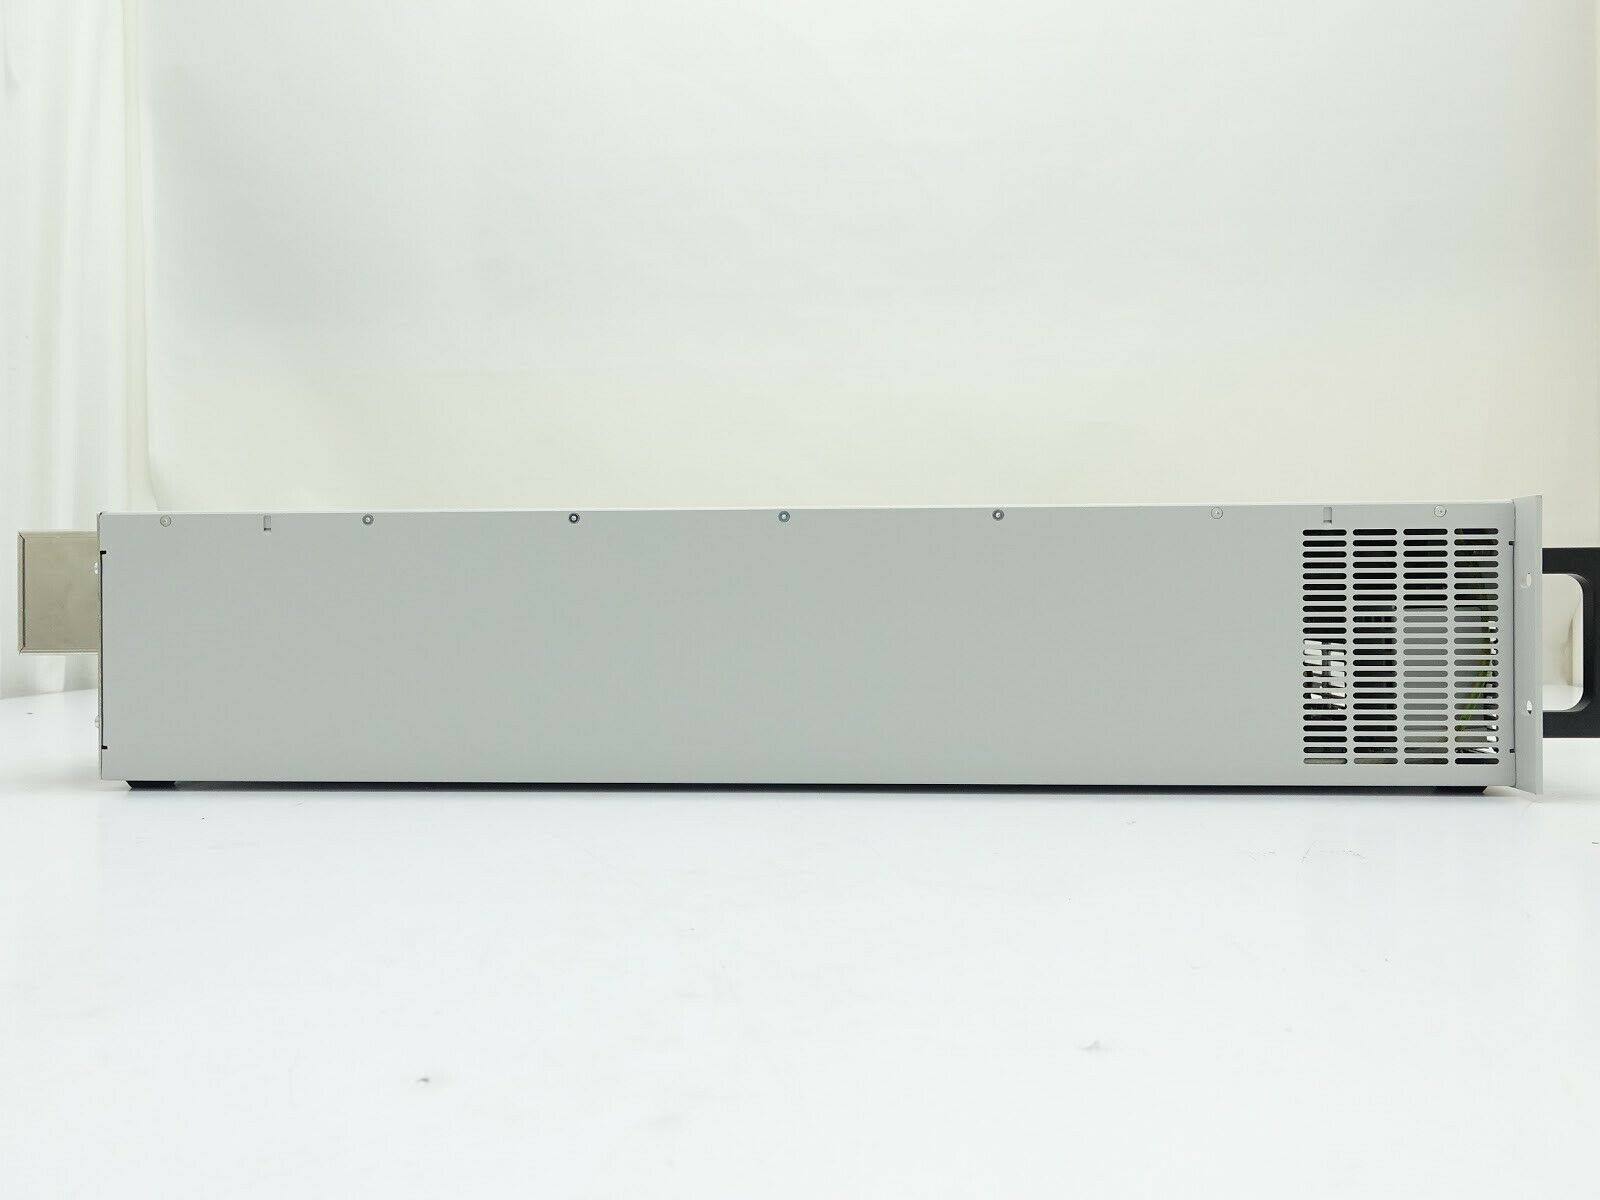 Keysight N8924A Autoranging System DC Power Supply / 750V / 20A / 5000W / 208VAC